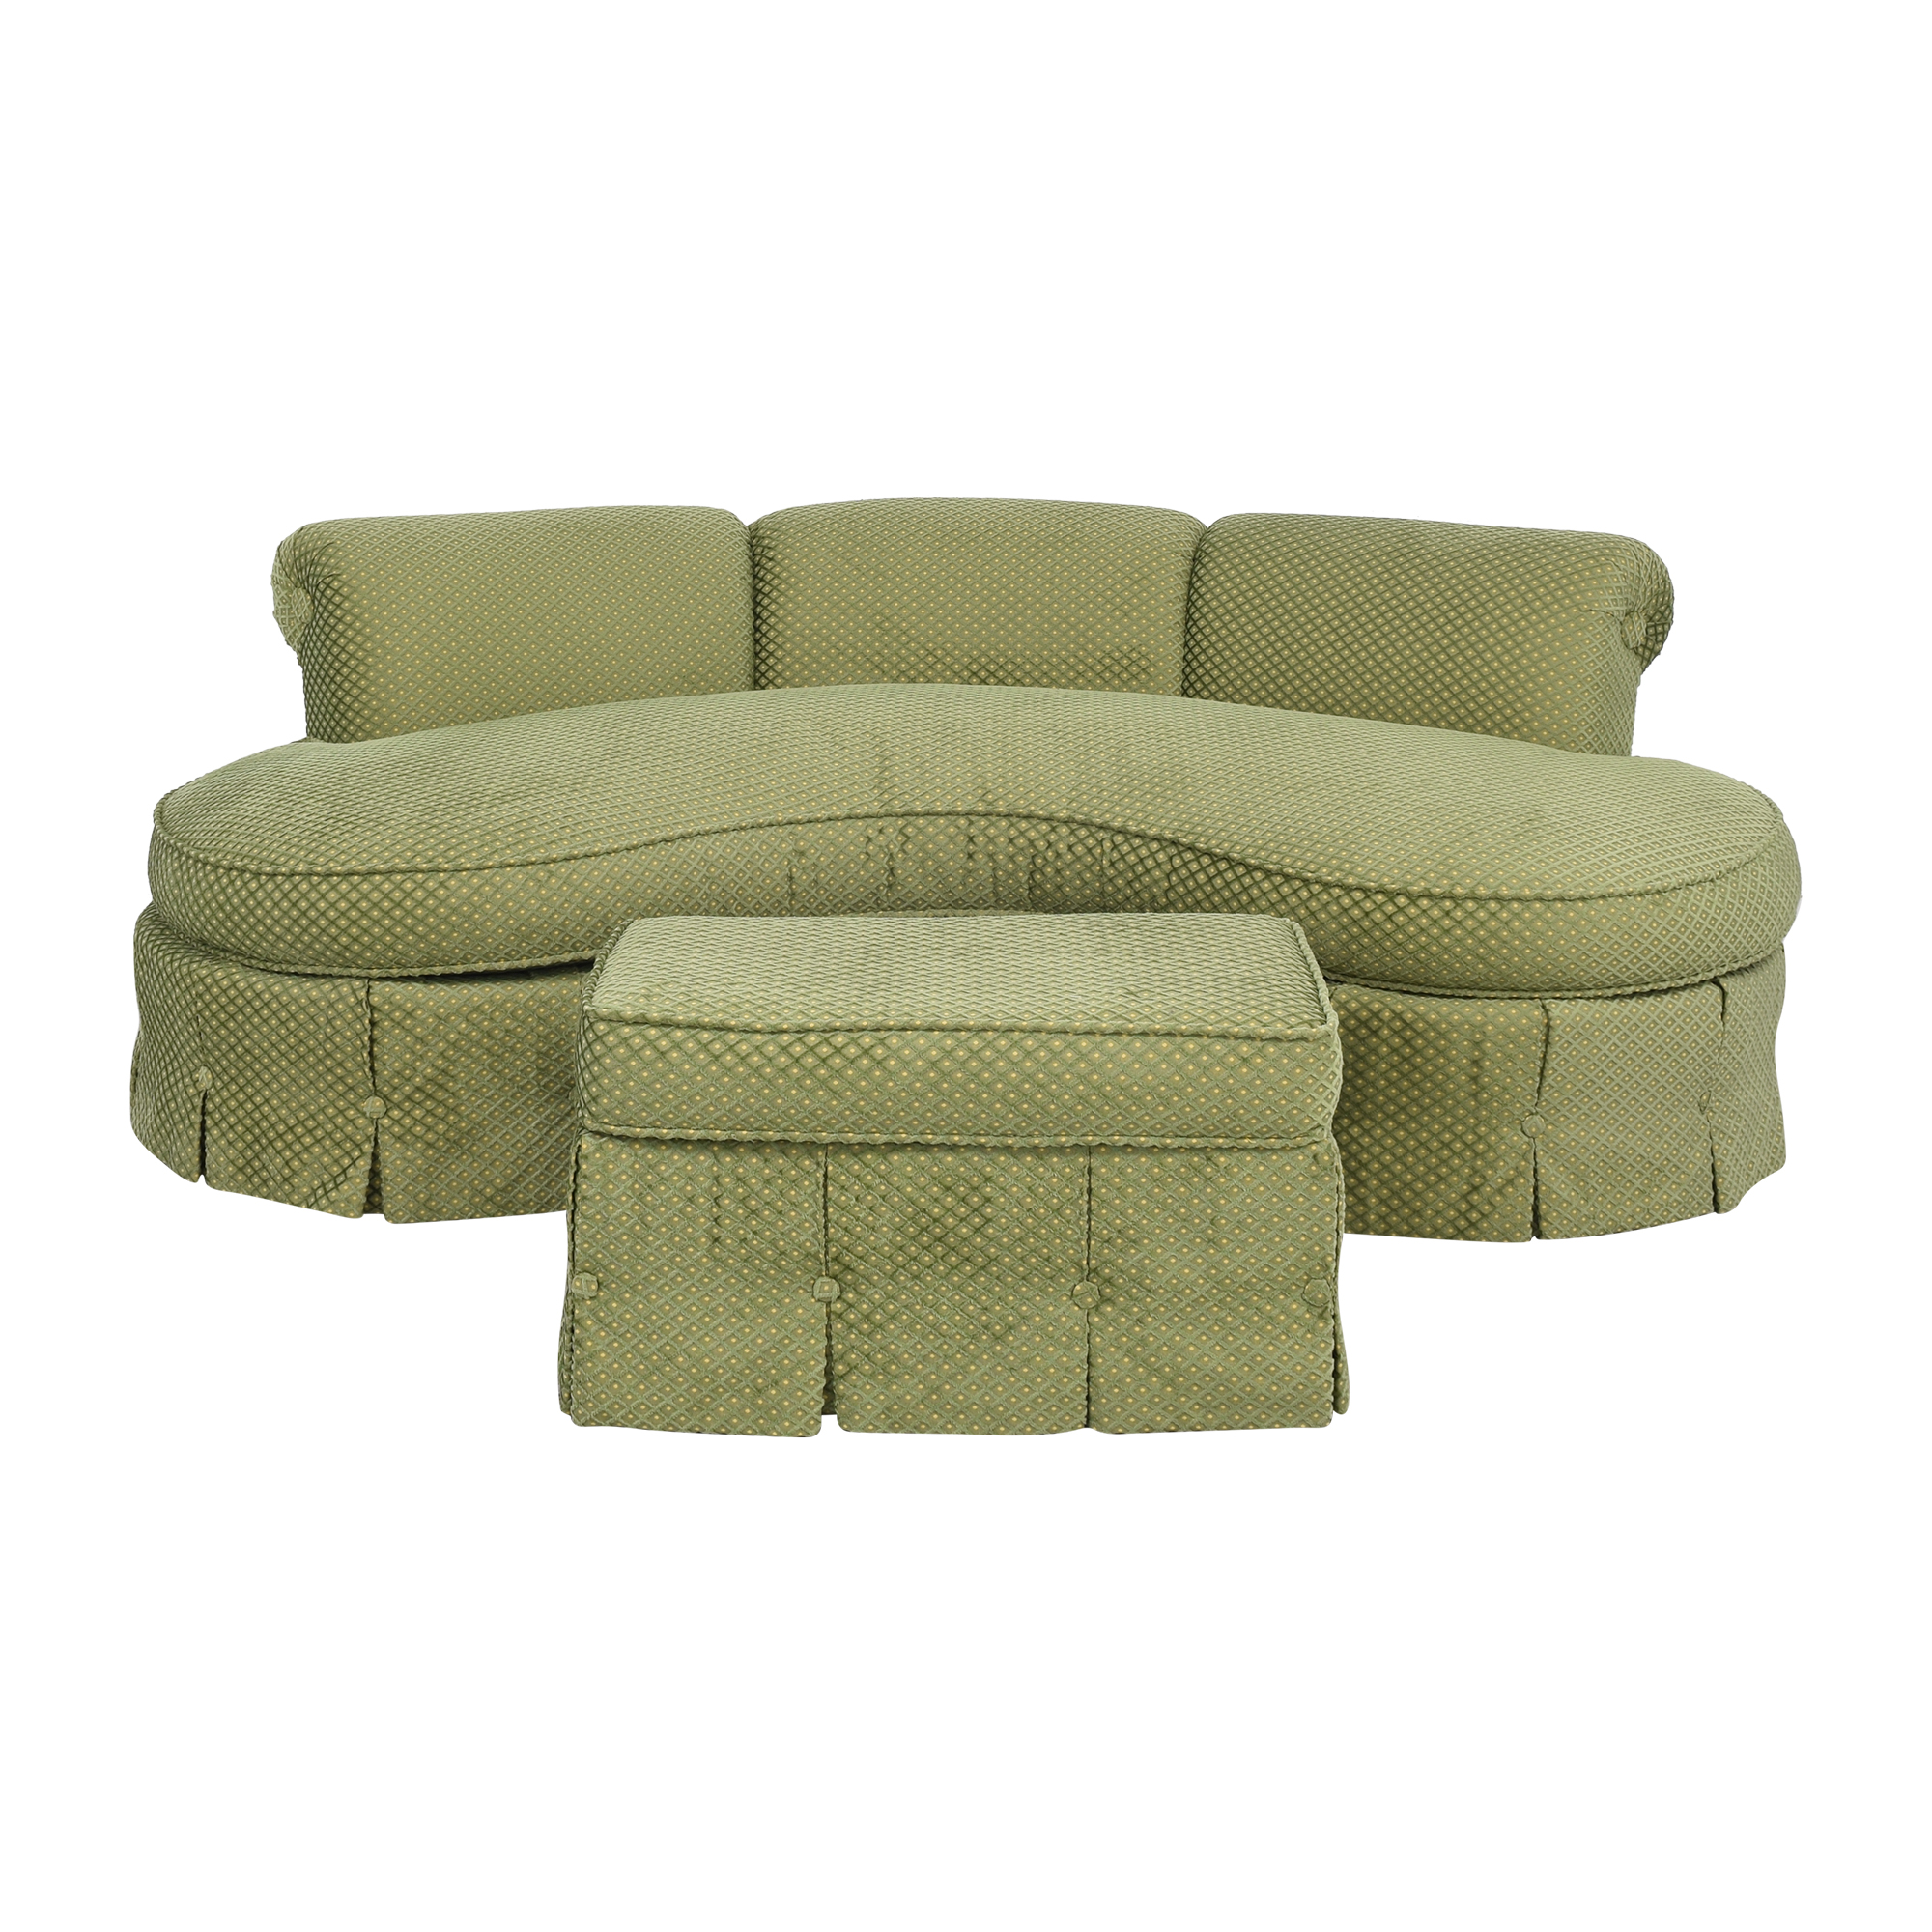 shop  Custom Curved Sofa with Skirted Base and Matching Ottoman online